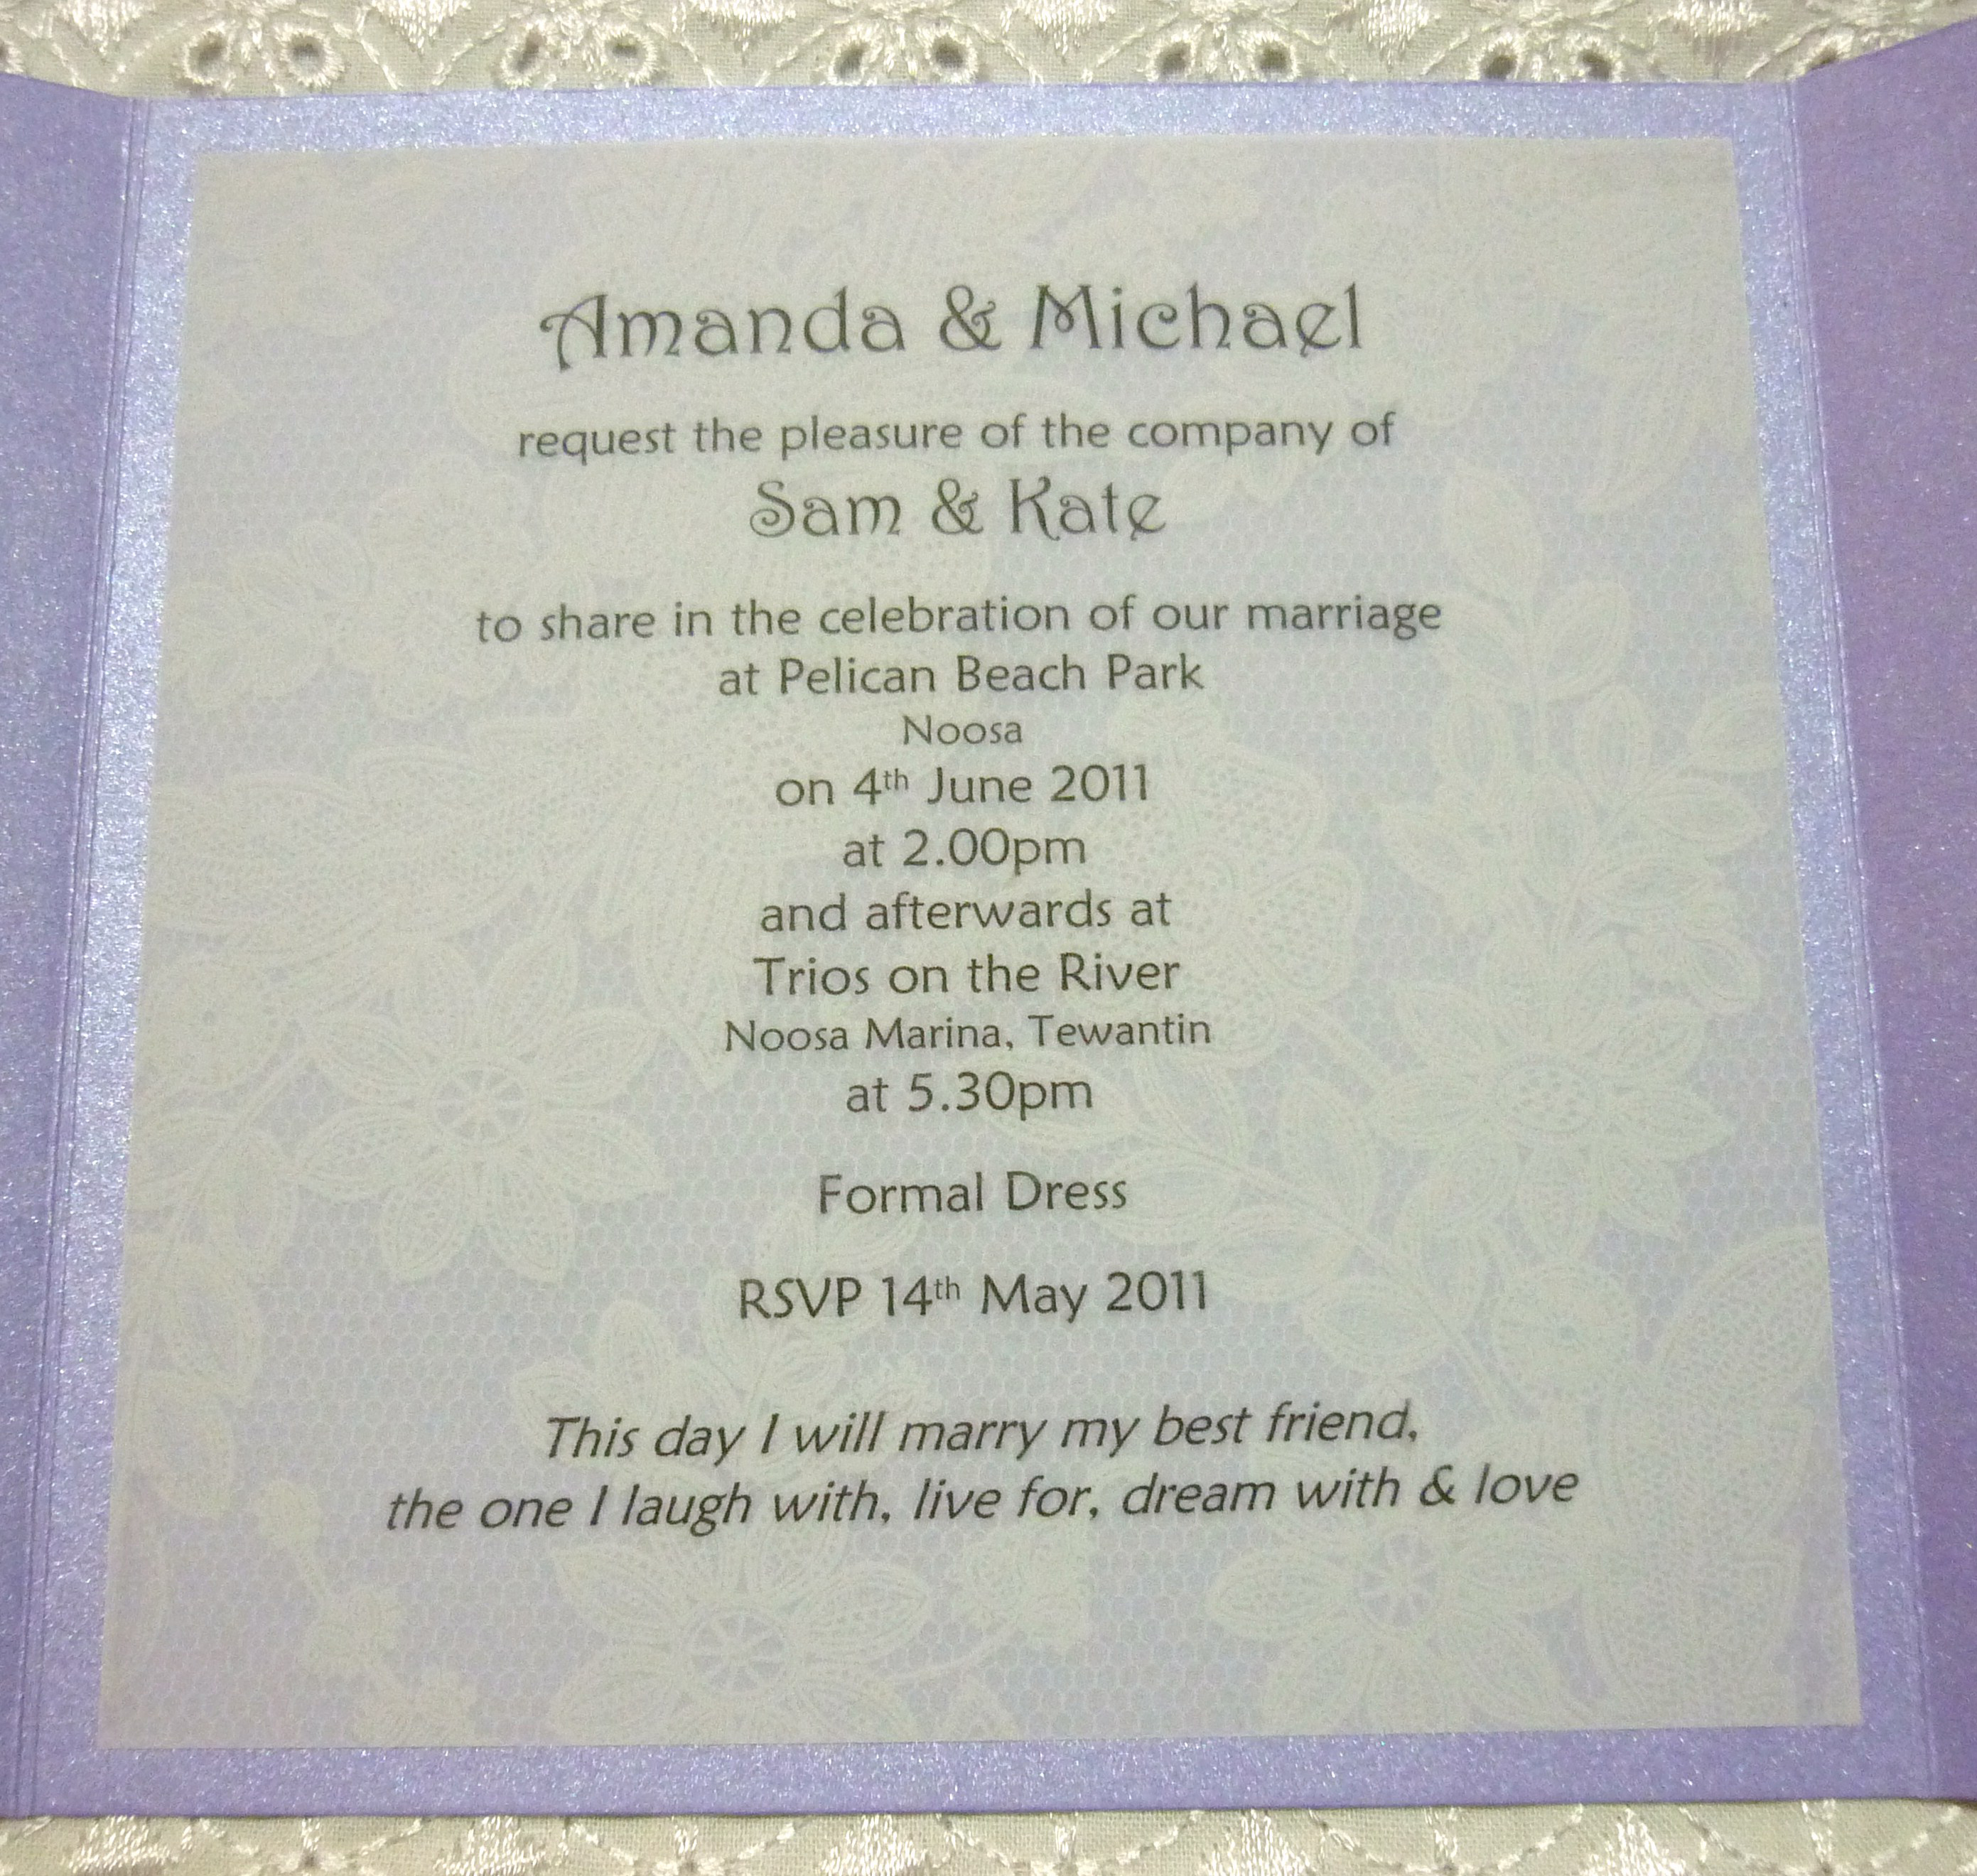 Quote For Wedding Invitation: Wedding Invitation Quotes. QuotesGram